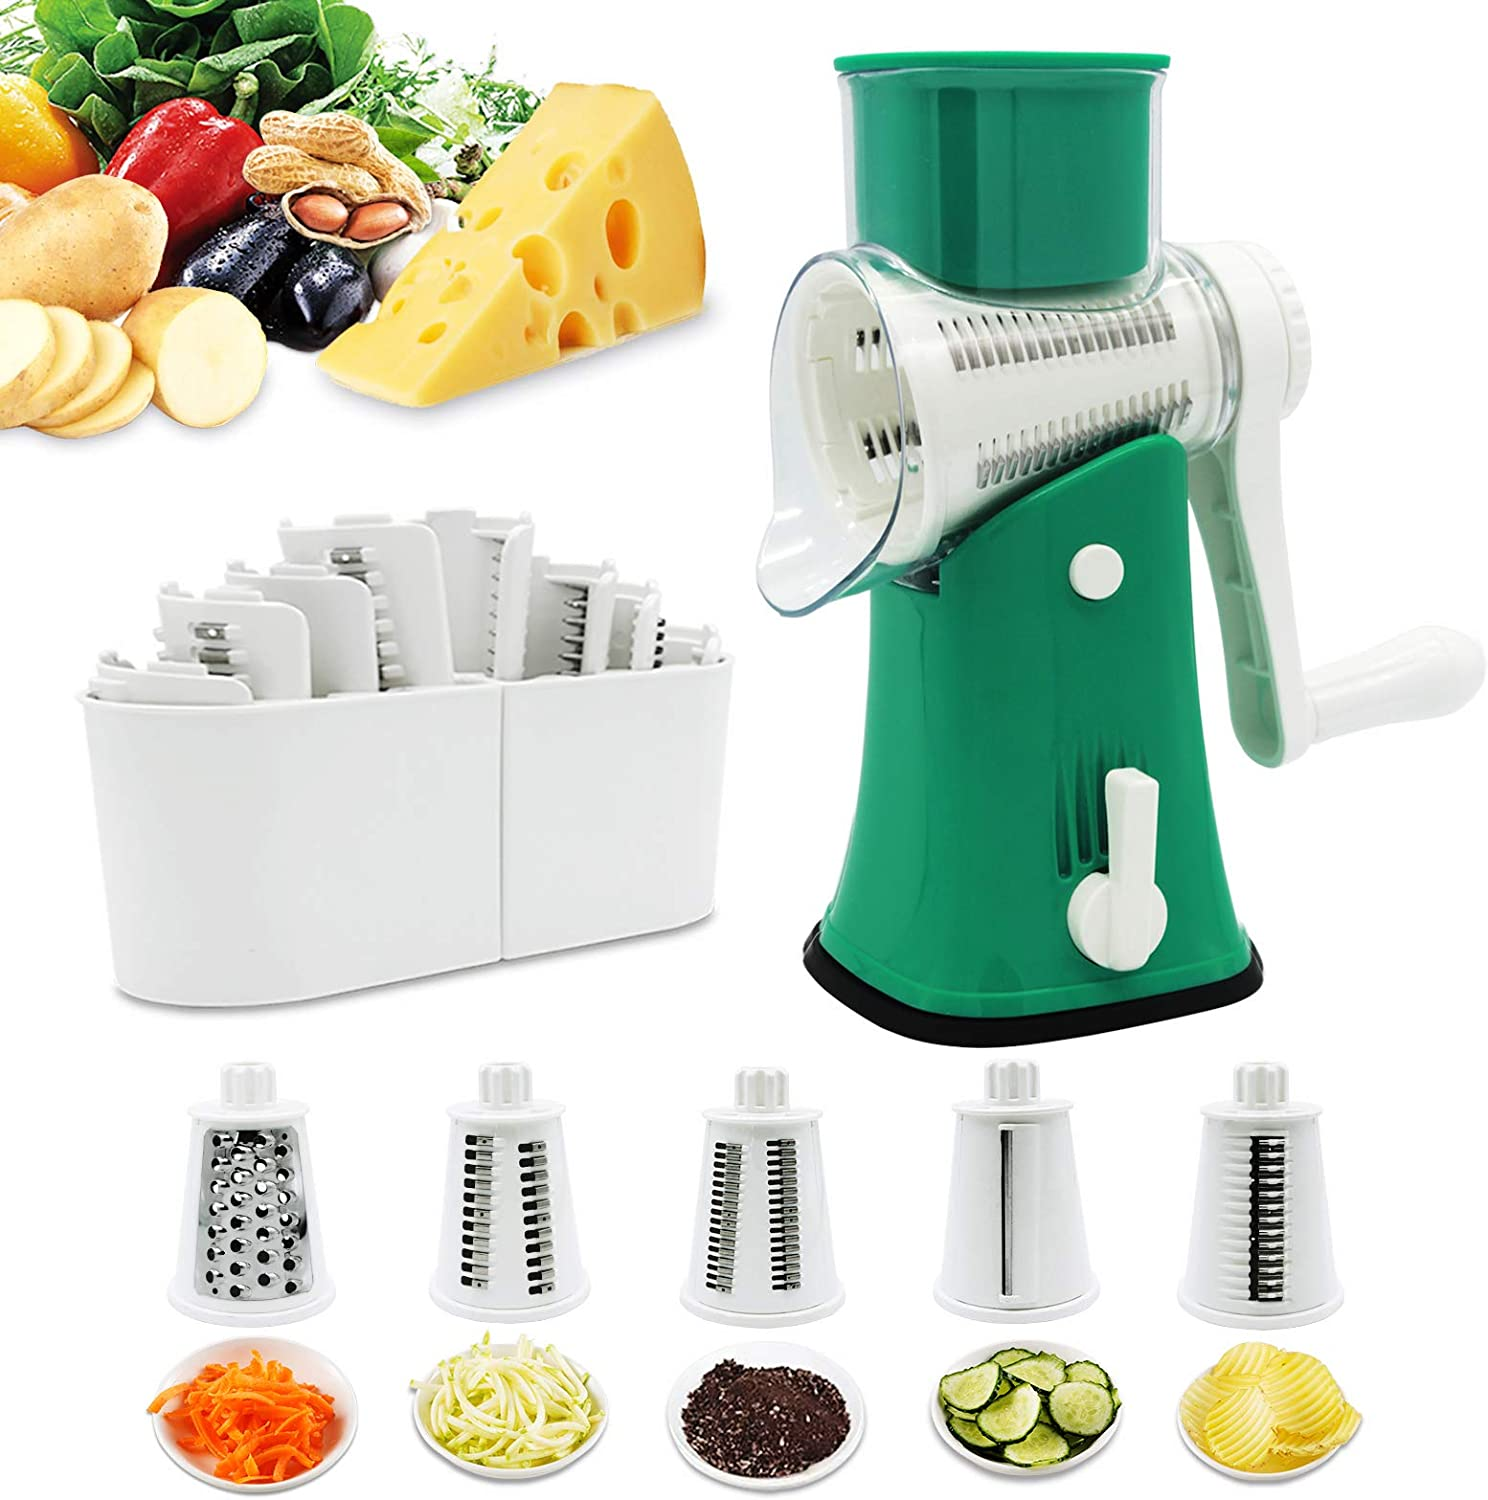 Cheese Grater 5 in 1 Rotary Graters-VEKAYA Kitchen Veggie Mandoline Slicer and Potato Slicer with  Hand-held, Julienne Shredder and Waffle Slicers for Fruits Vegetables Nuts French Fries green